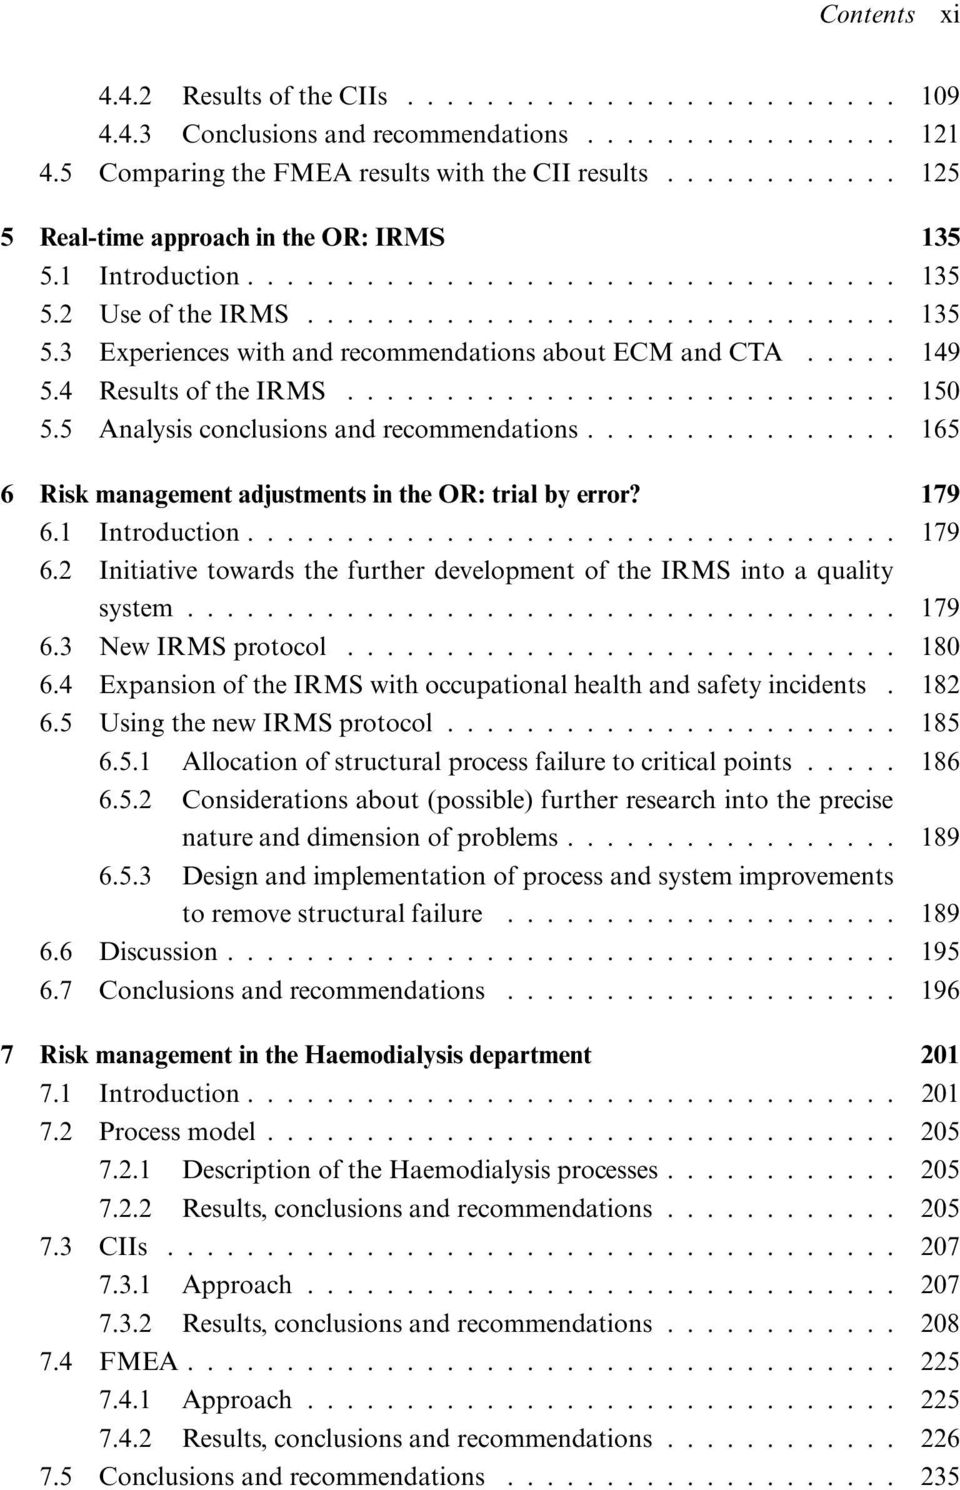 .. 165 6 Risk management adjustments in the OR: trial by error? 179 6.1 Introduction... 179 6.2 Initiative towards the further development of the IRMS into a quality system... 179 6.3 NewIRMSprotocol.